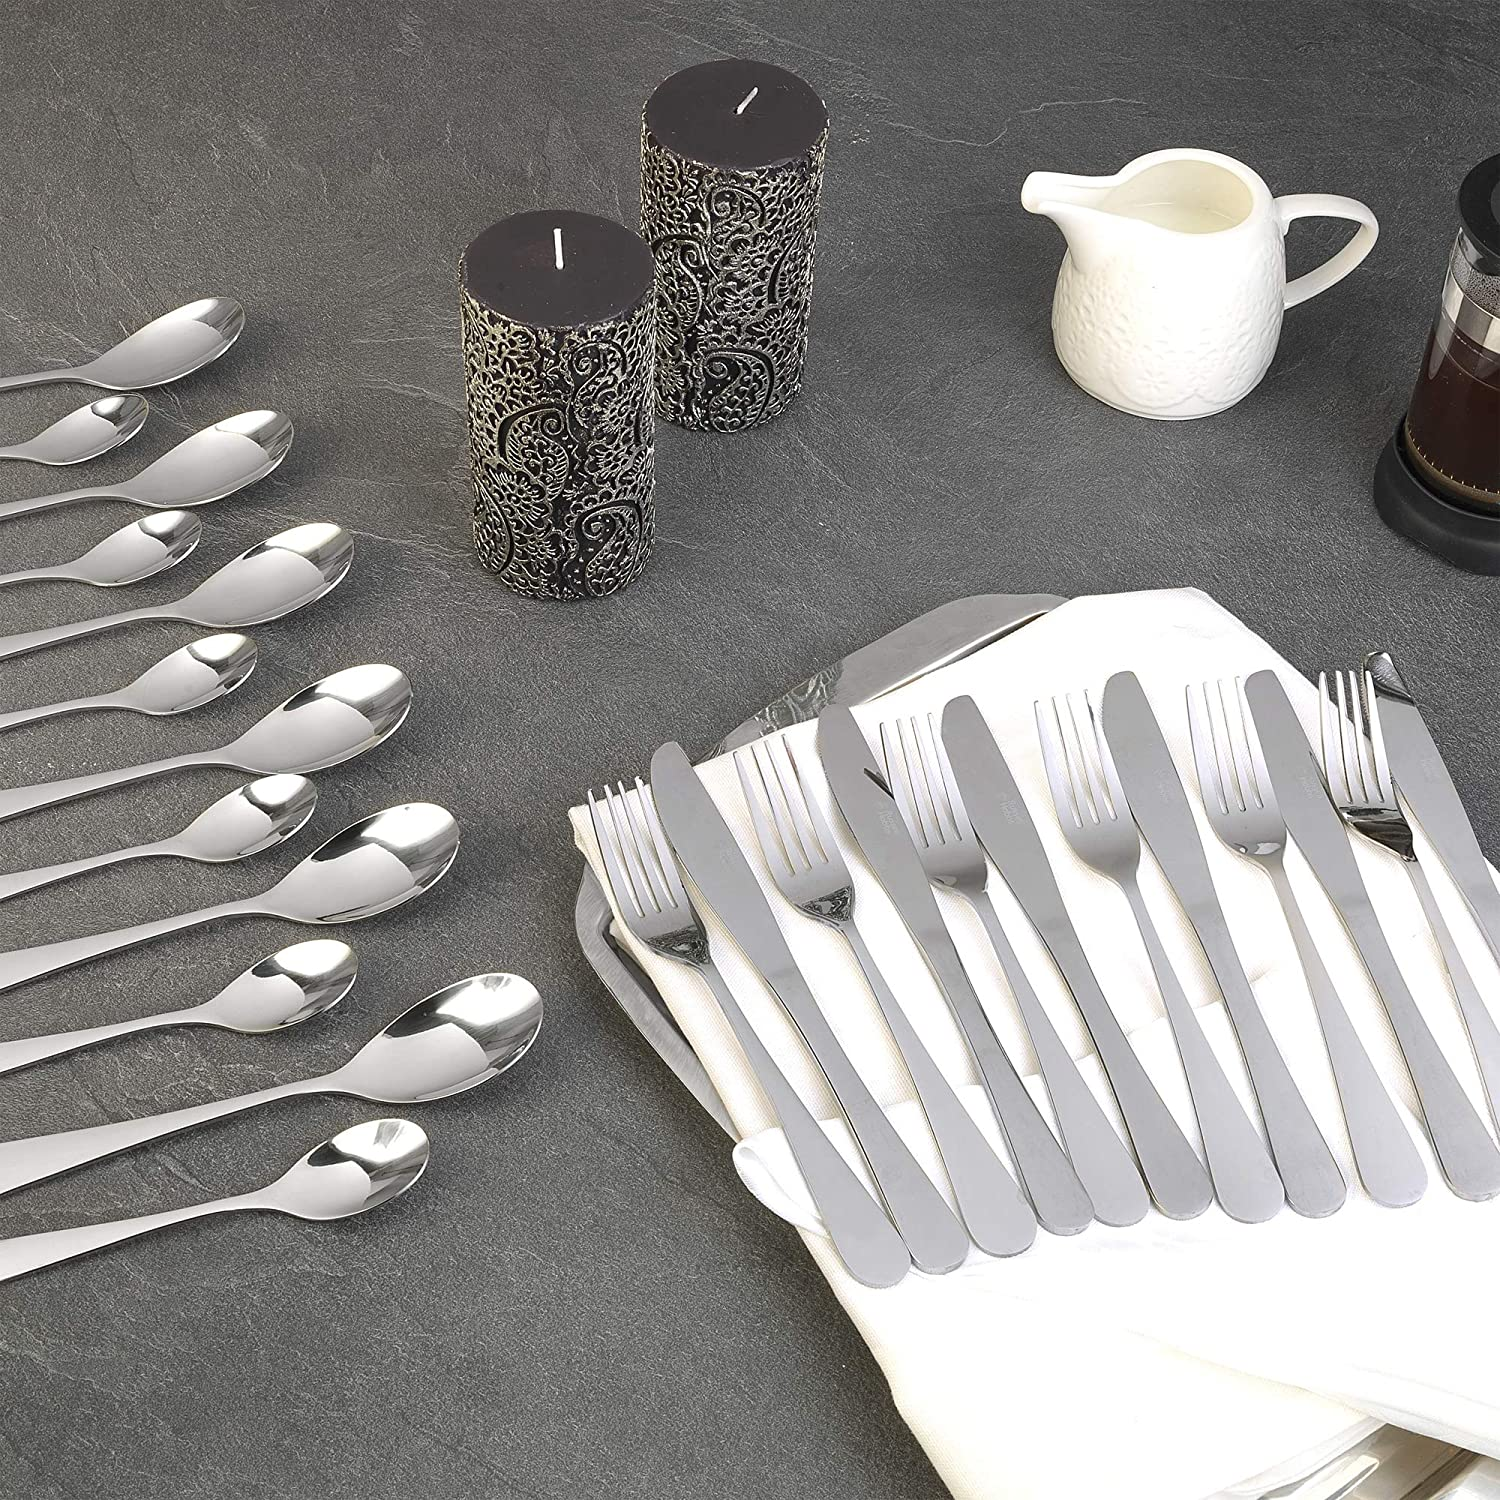 Amazon.com: Russell Hobbs BW03130 Deluxe London Silver Stainless Steel 24 Piece Stylish Cutlery Set by Russell Hobbs: Home & Kitchen